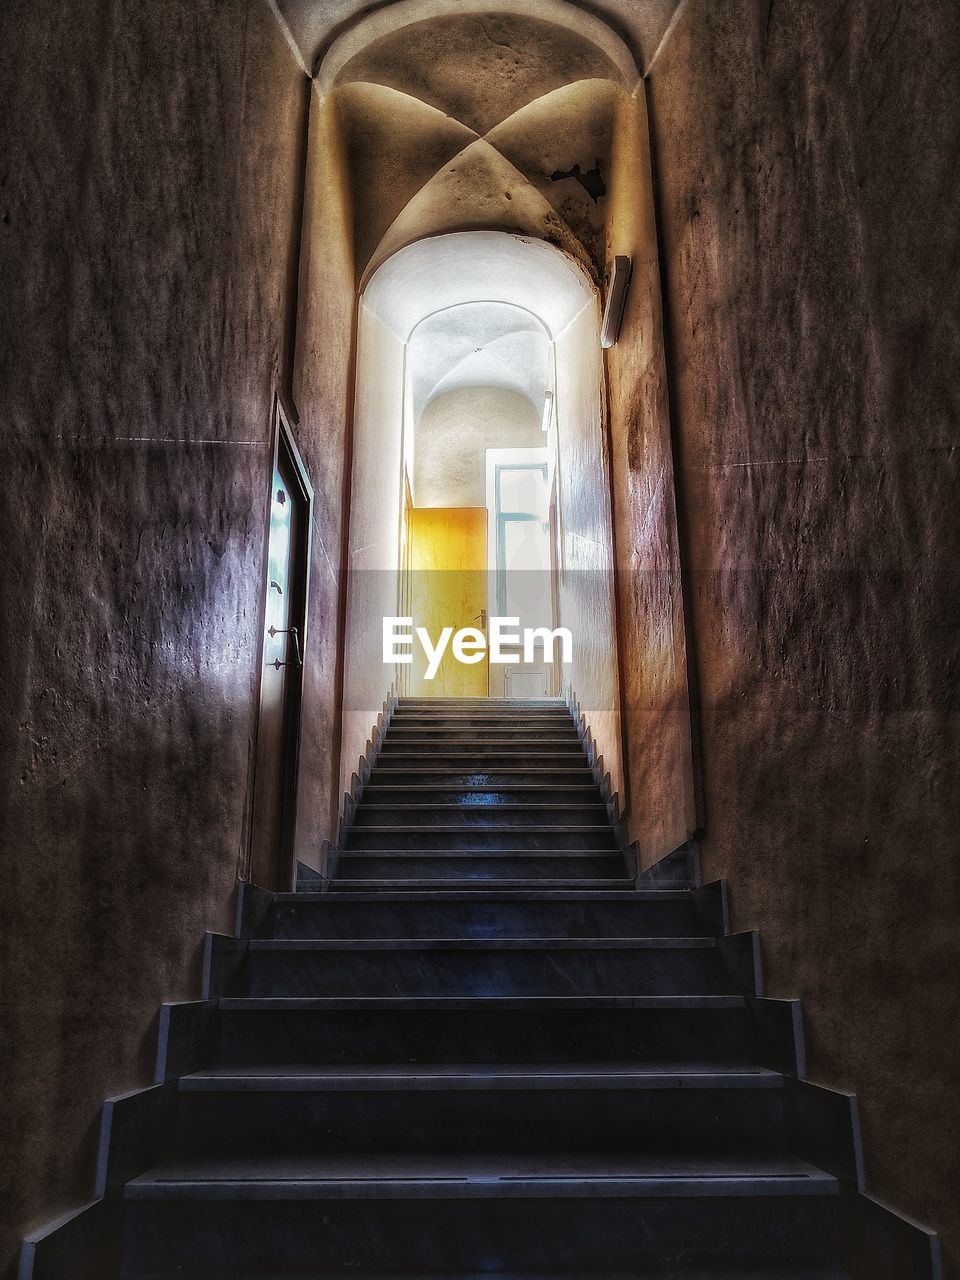 indoors, staircase, the way forward, architecture, direction, no people, arch, steps and staircases, built structure, low angle view, building, day, empty, wall - building feature, absence, diminishing perspective, old, door, illuminated, ceiling, light at the end of the tunnel